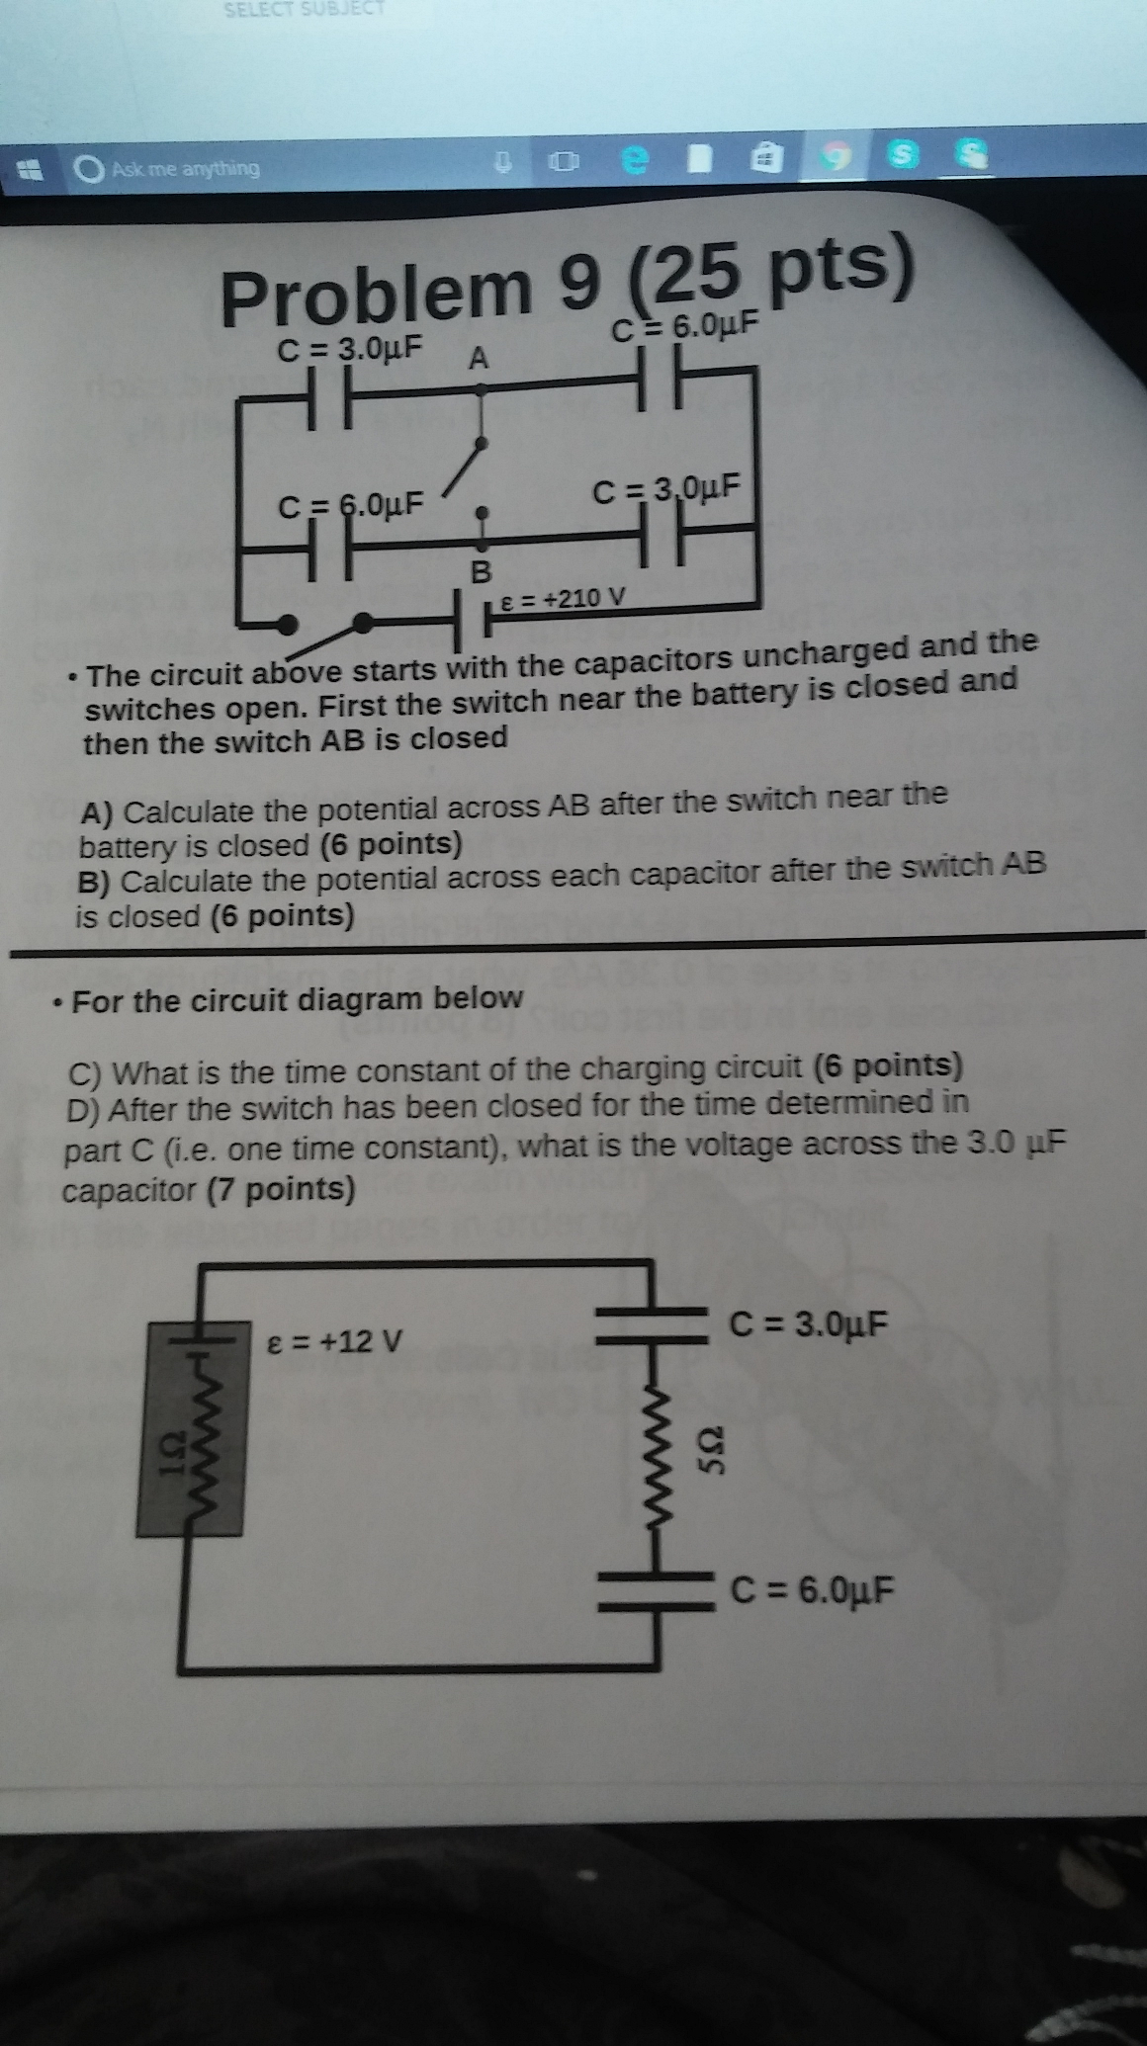 Solved: The Circuit Above Starts With The Capacitors Uncha ...